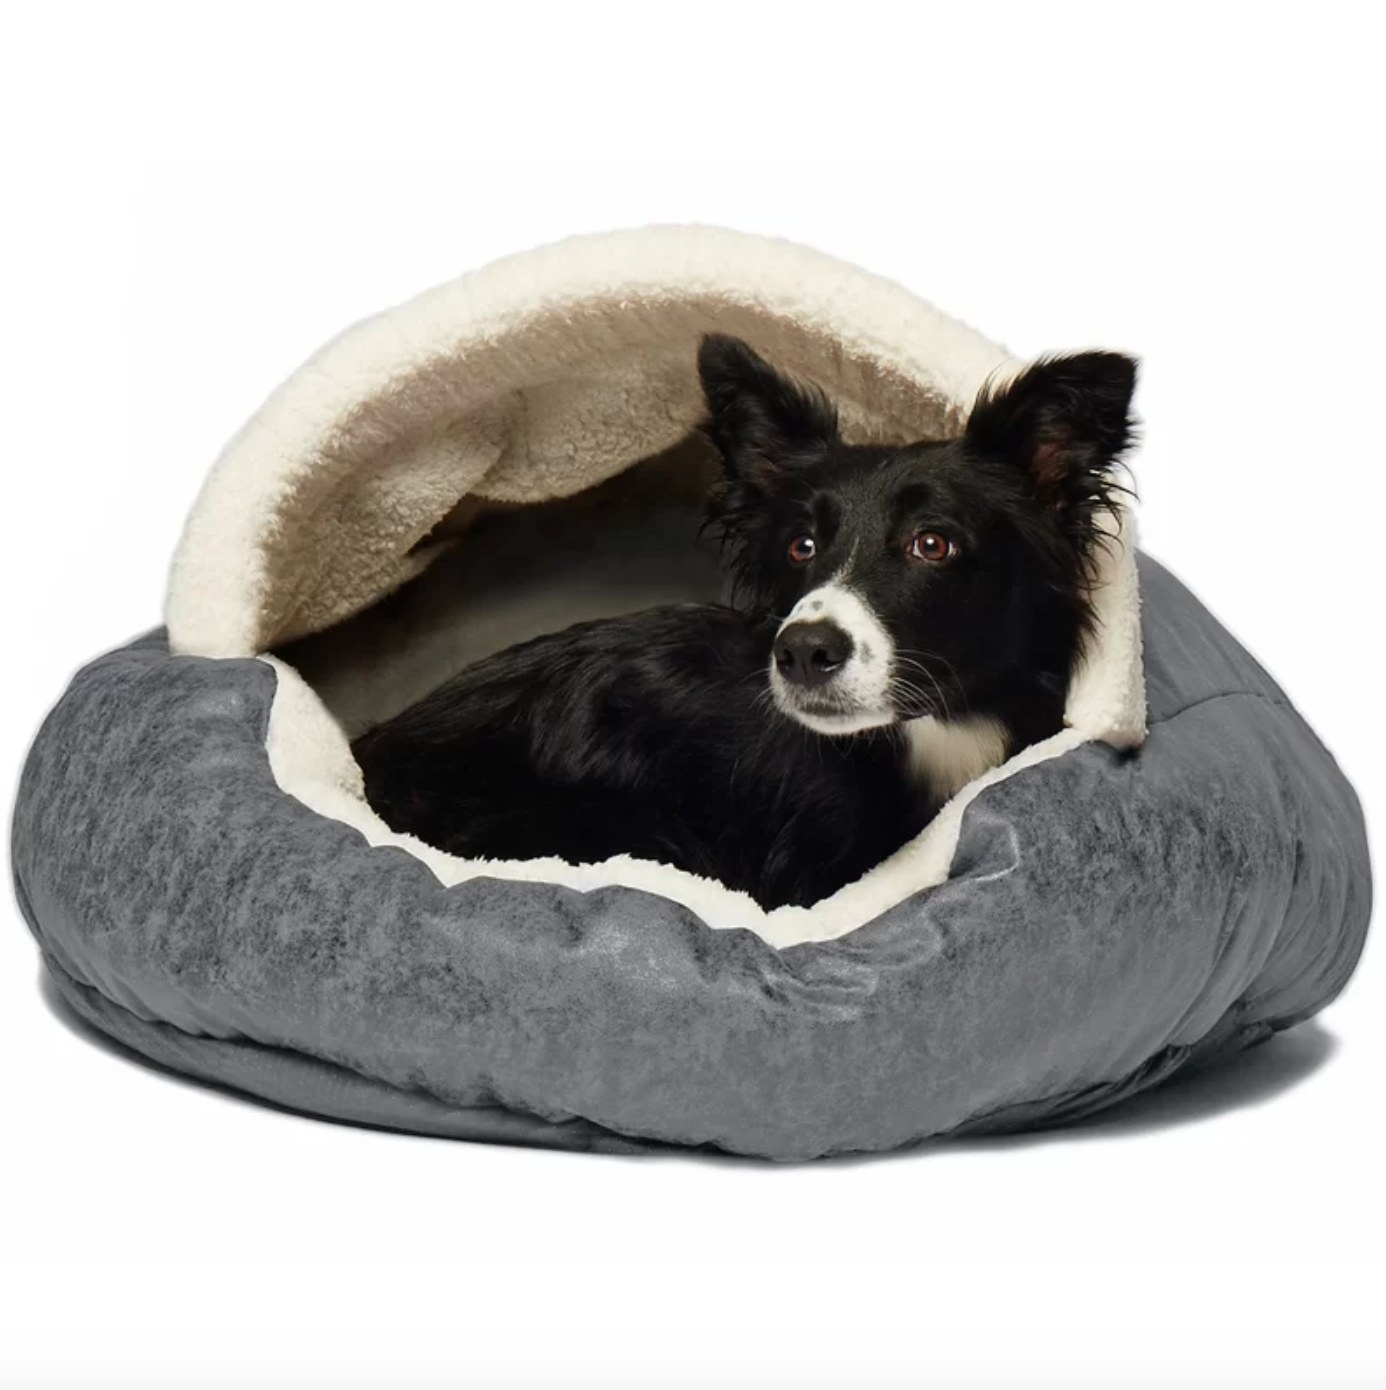 The hooded dog bed in gray